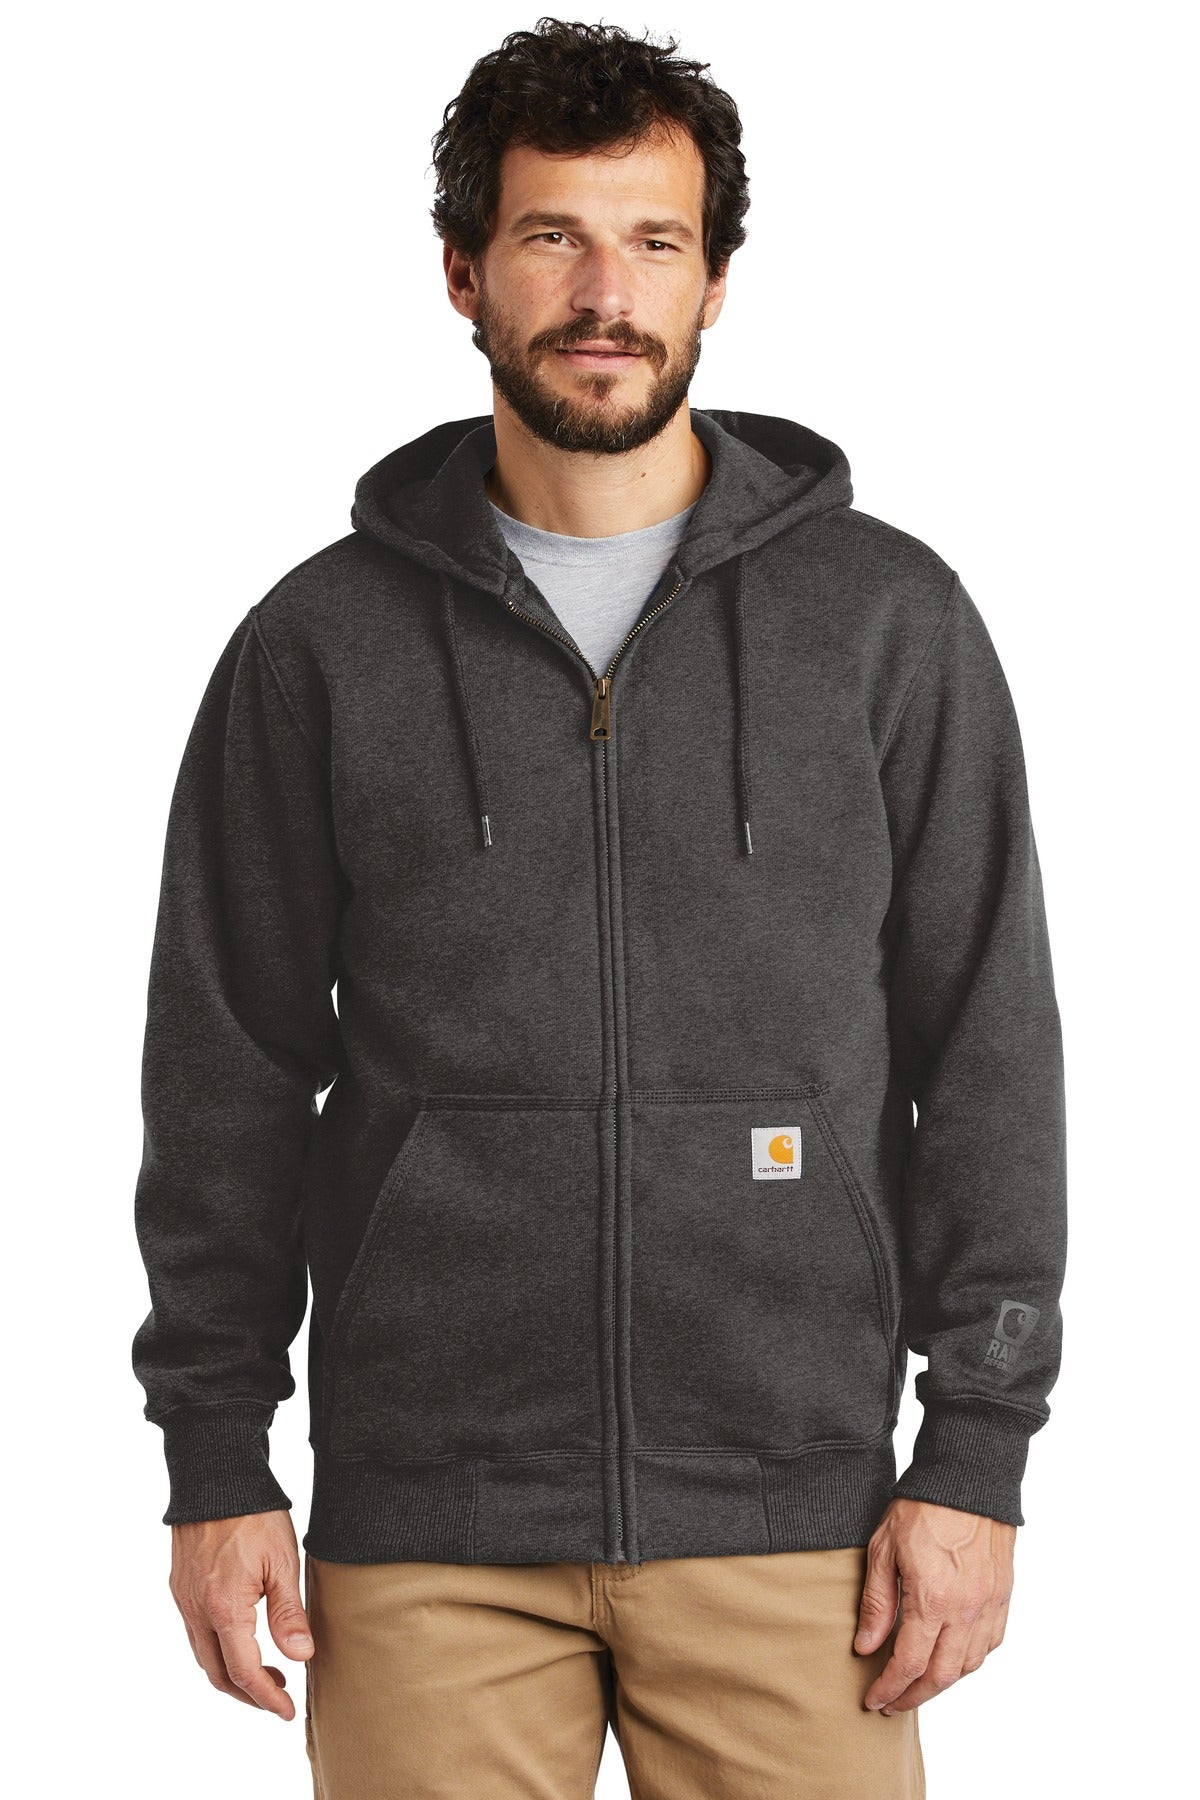 Carhartt ® Rain Defender ® Paxton Heavyweight Hooded Zip-Front Sweatshirt. CT100614 - Aspire Zone